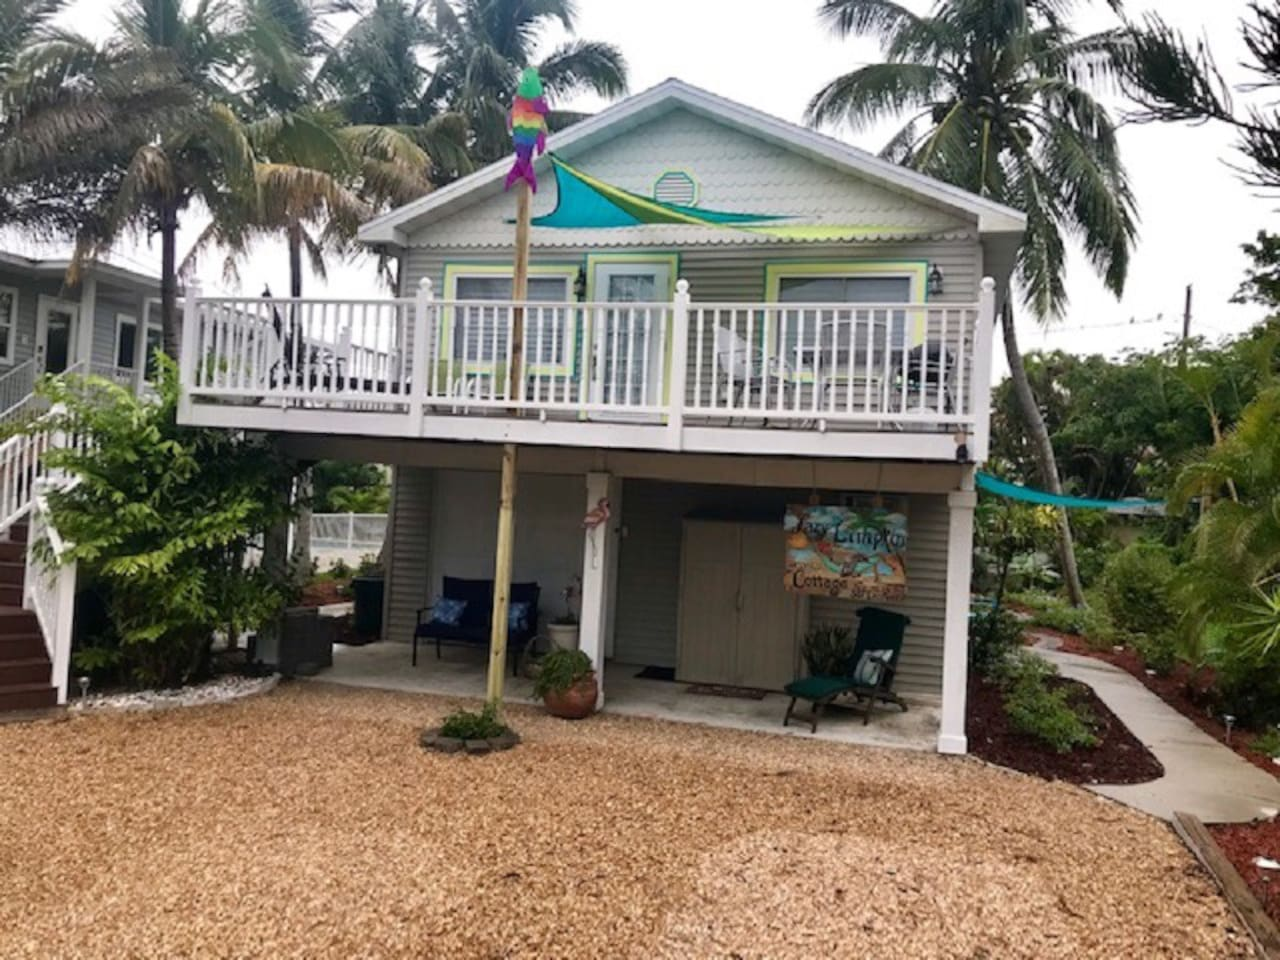 Shading sails of bright blue and green brighten the upper deck of Island Life Suite. A colorful fish wind sock lets you know which way the wind is blowing...fun day ahead! Relax on the chaise lounge or grill on the gas grill and dine el fresco.